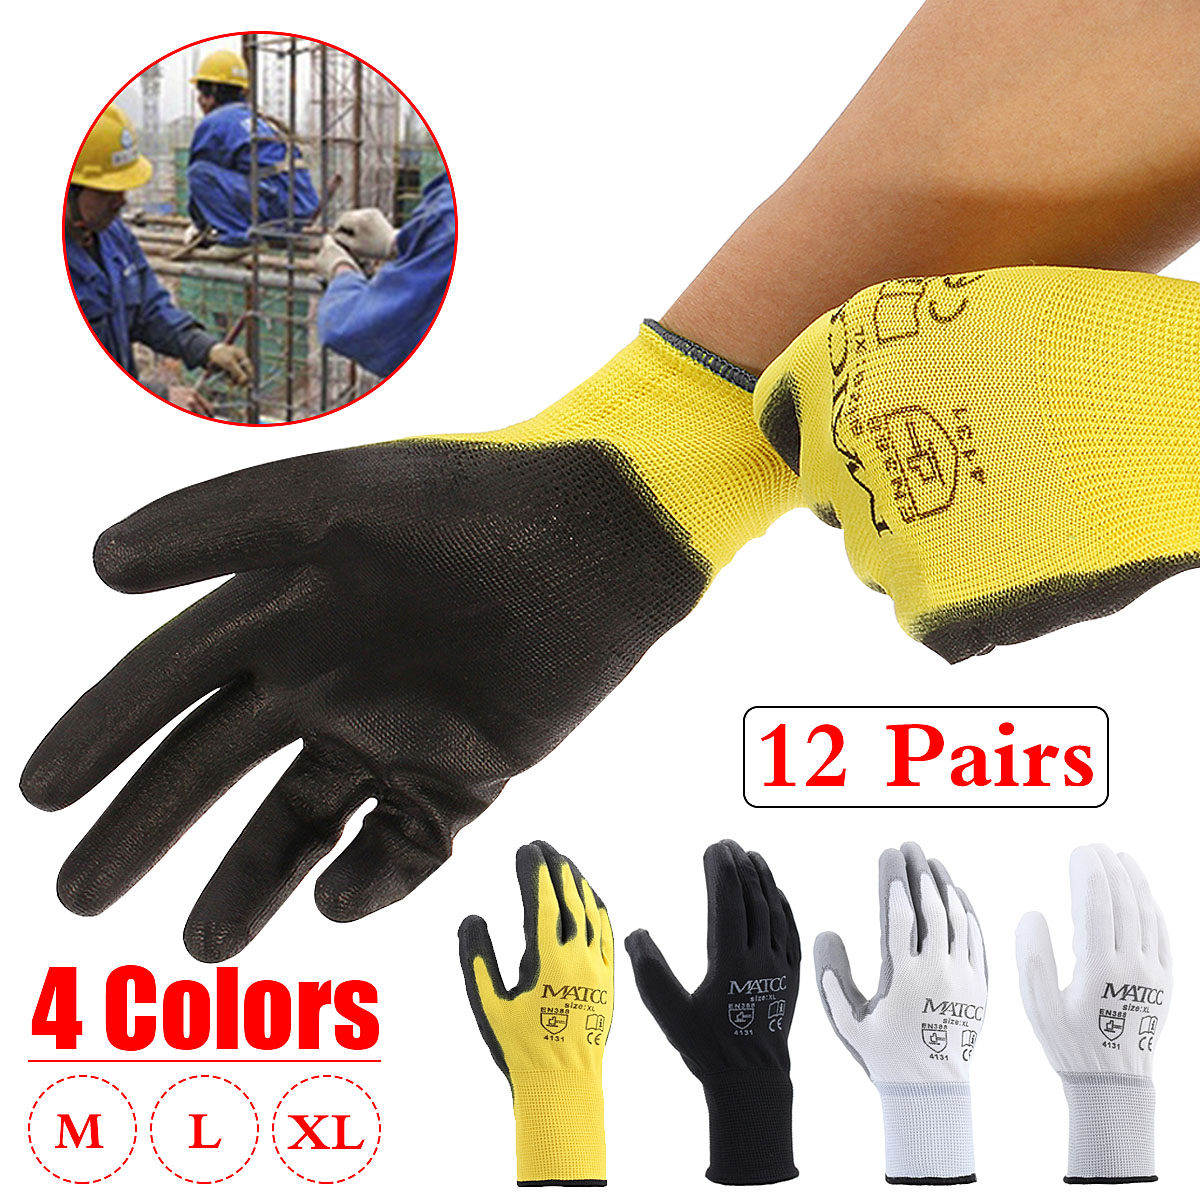 10 Pair High Quality Nitrile Coated Work Gloves Hand Protection Nylon Safety